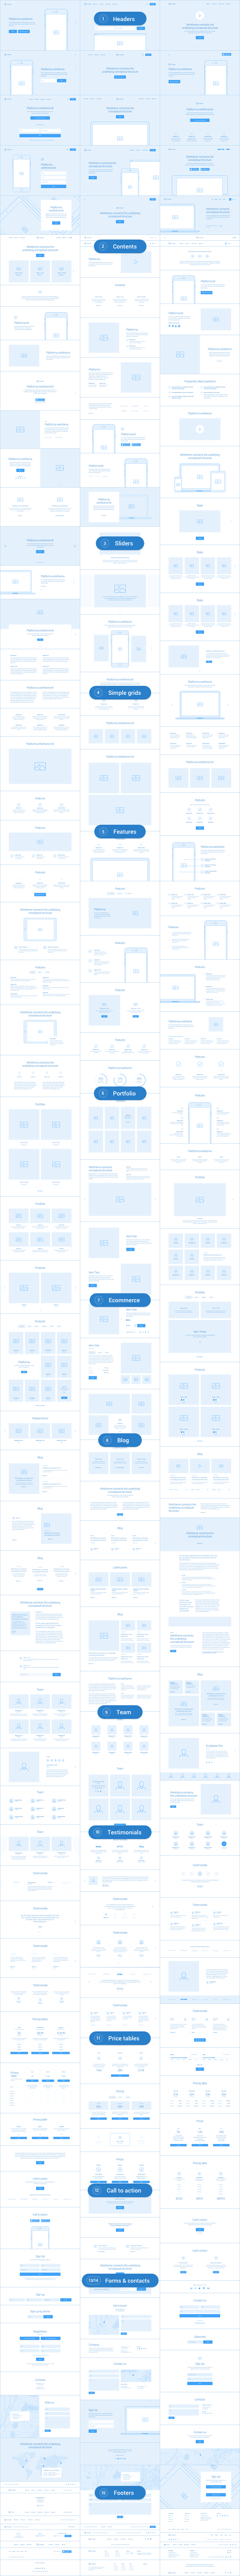 3 - Platforma: Ultimate Wireframe Kit of 200+ Layouts for Sketch